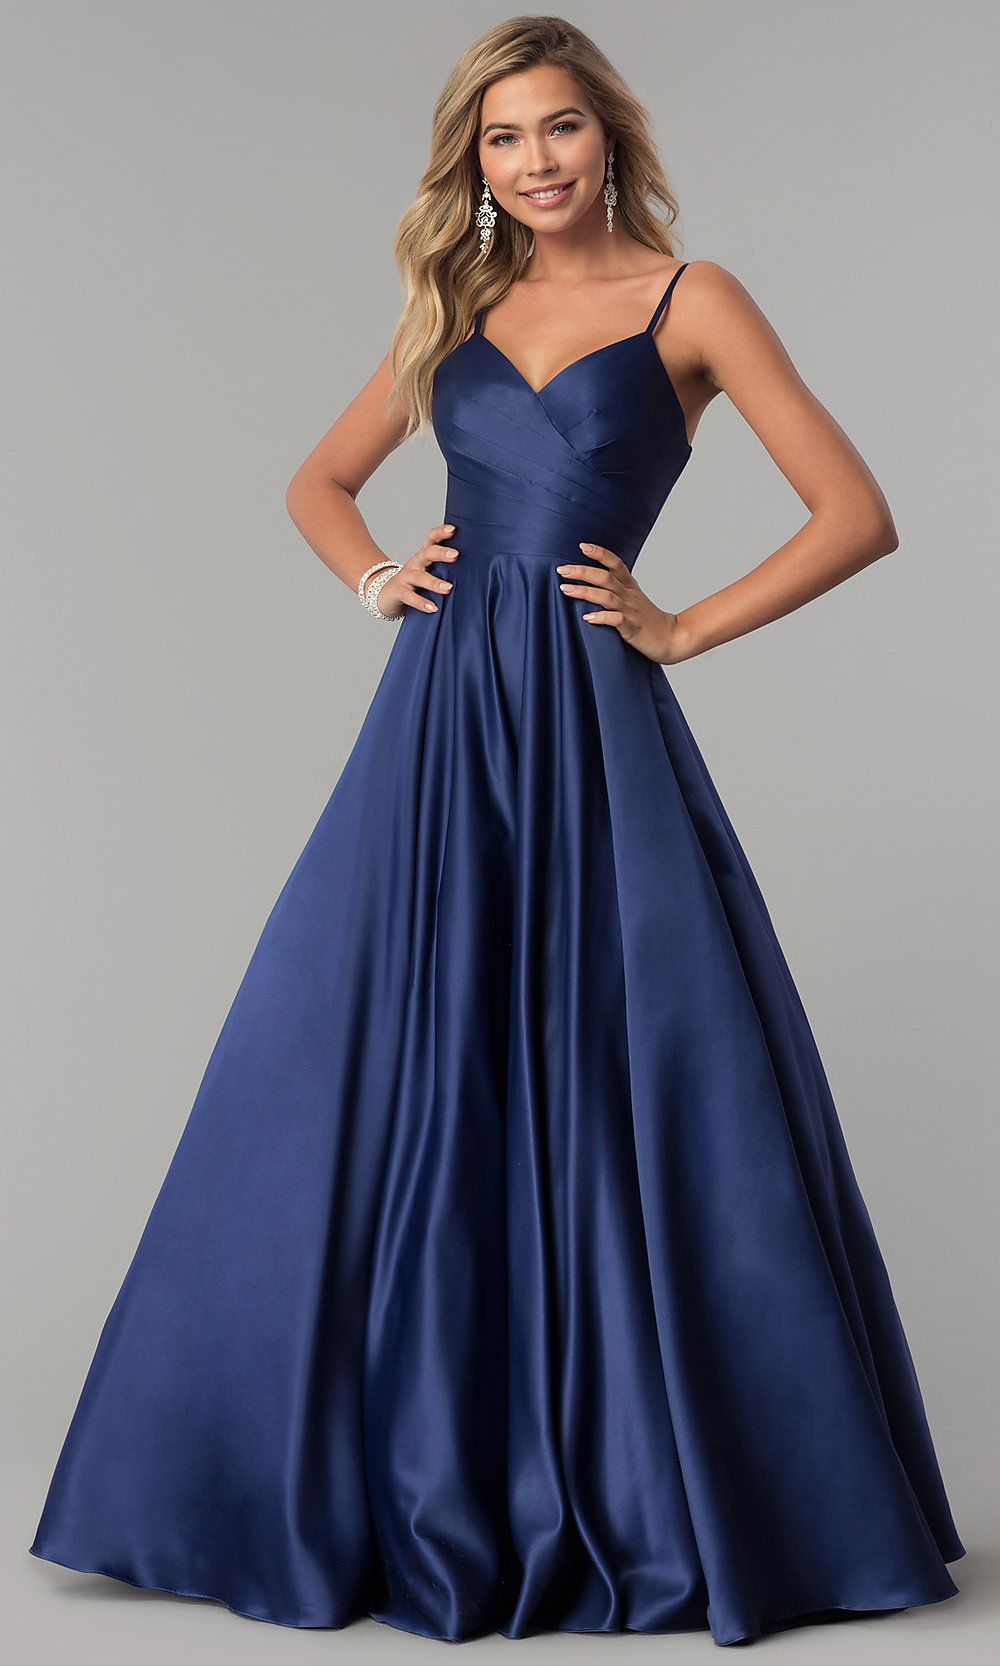 285d61df33c Long Formal Gowns Promgirl - Data Dynamic AG